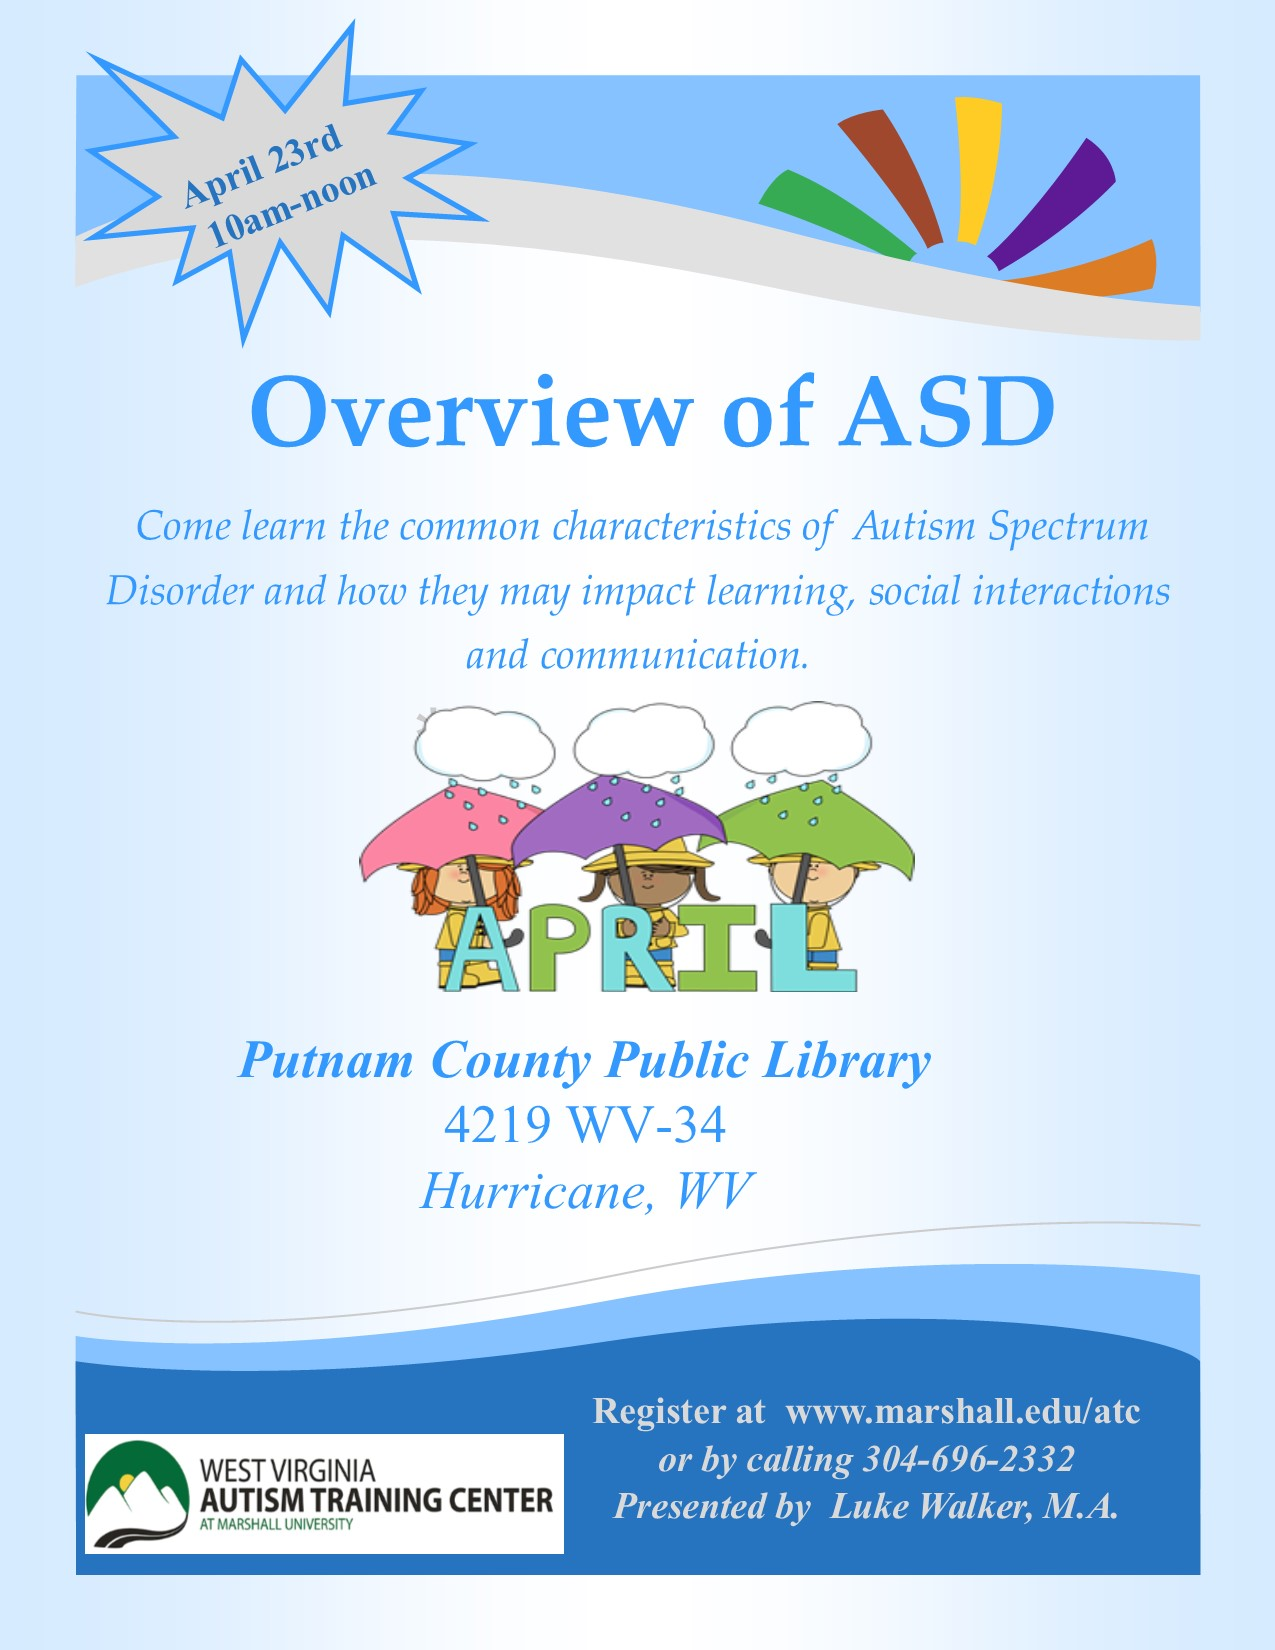 Putnam County Public Library Overview of ASD – Autism